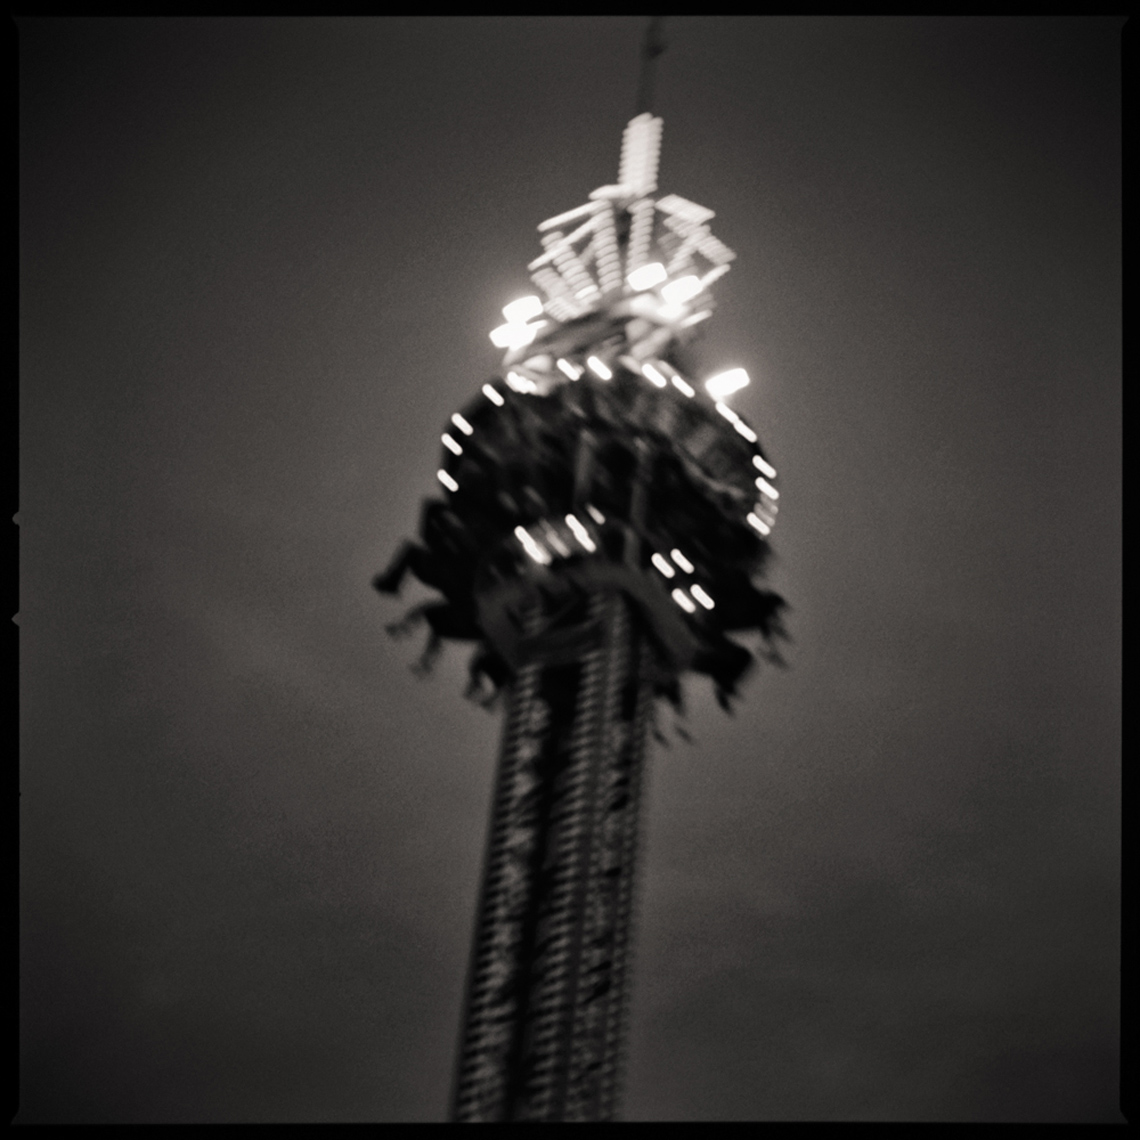 Sean Perry Photographs • From Earth to the Moon, from the series Fairgrounds